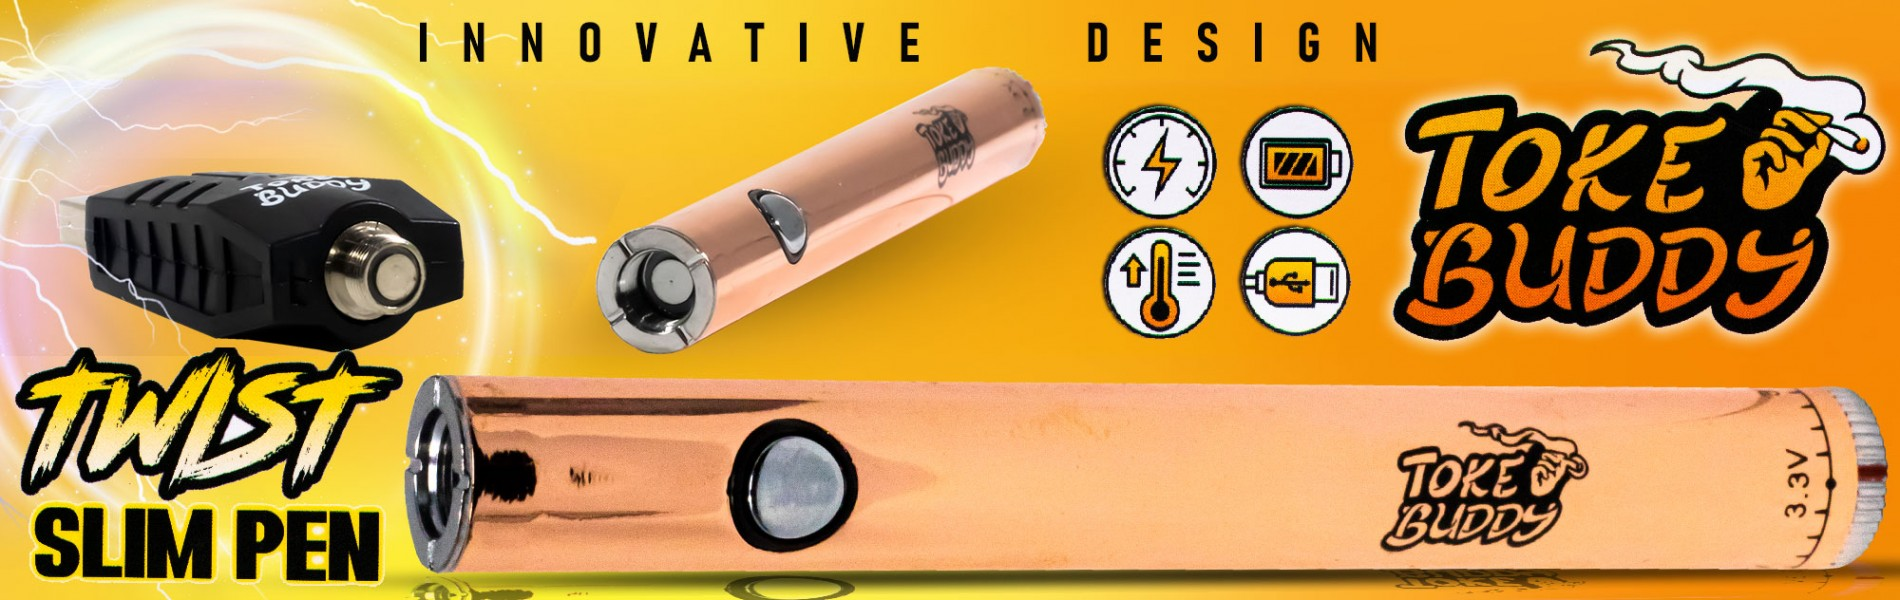 Twist Slim Pen, Innovative Design by Toke Buddy